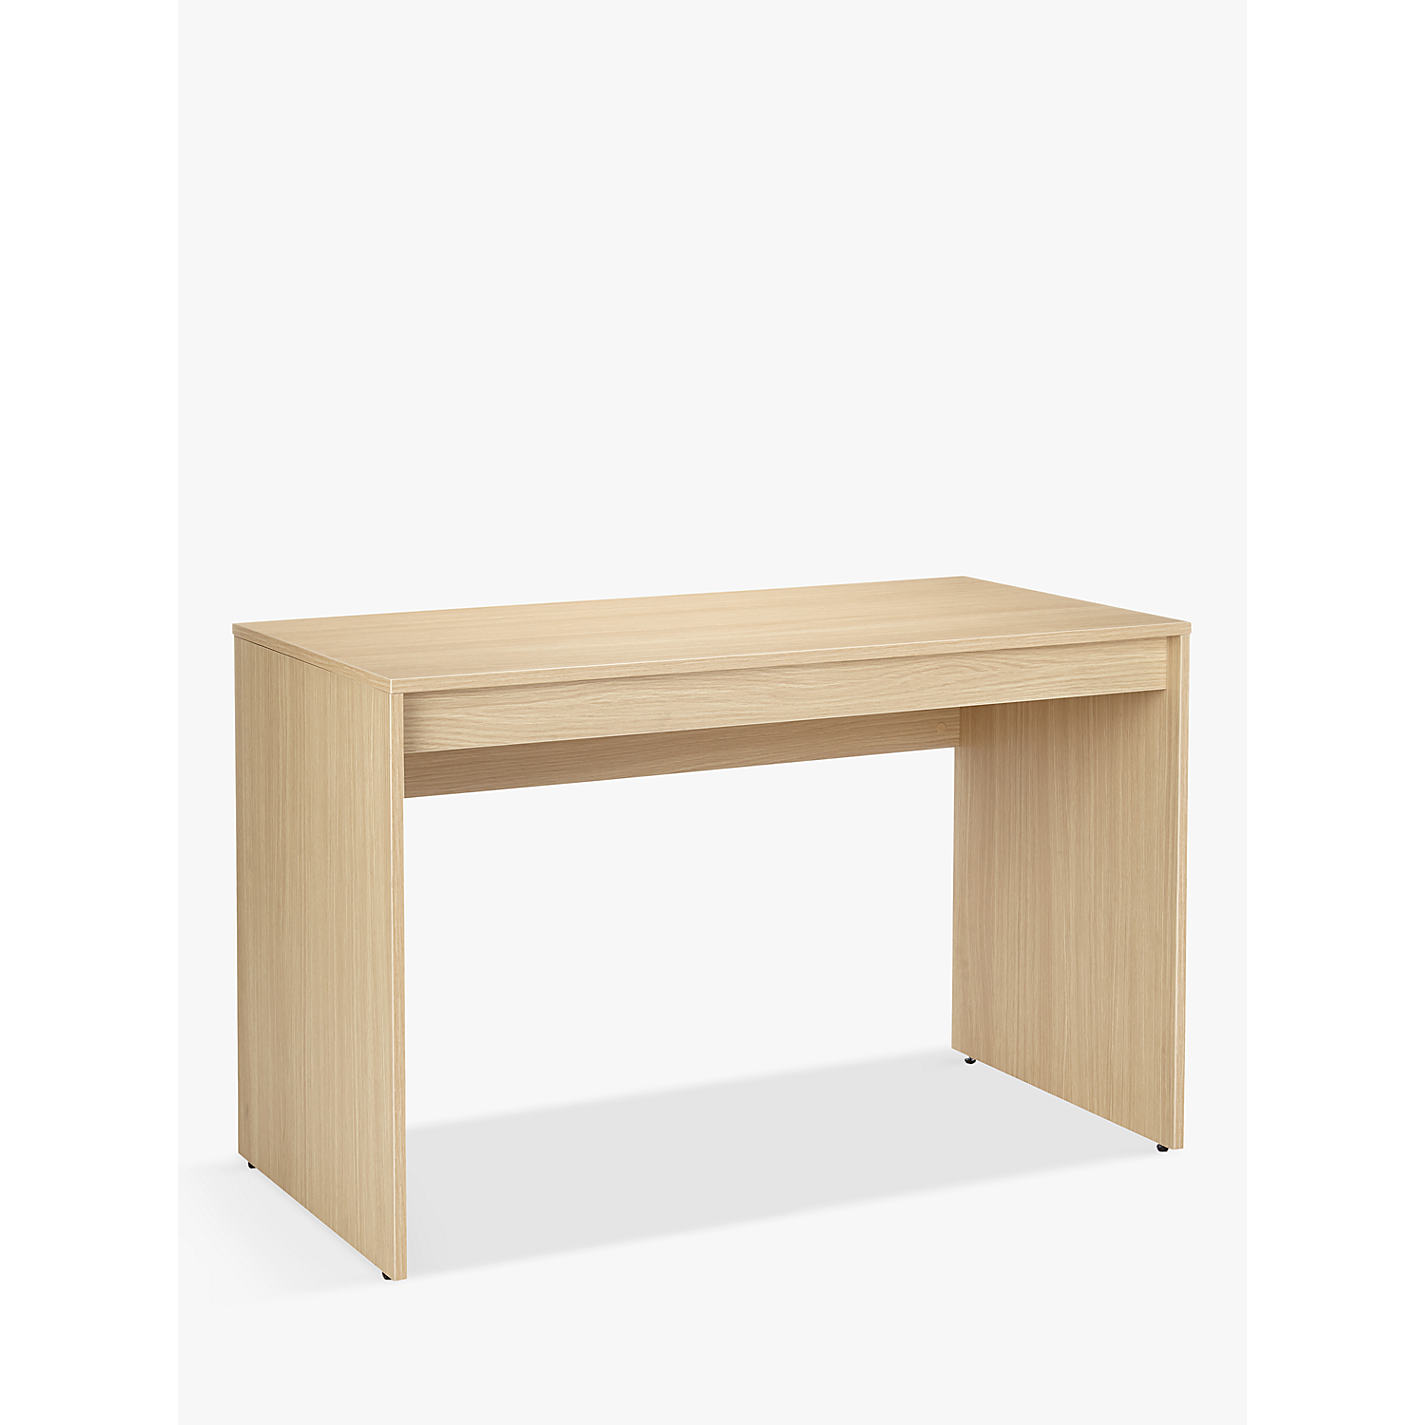 John Lewis The Basics Didi Desk Oak Online At Johnlewis